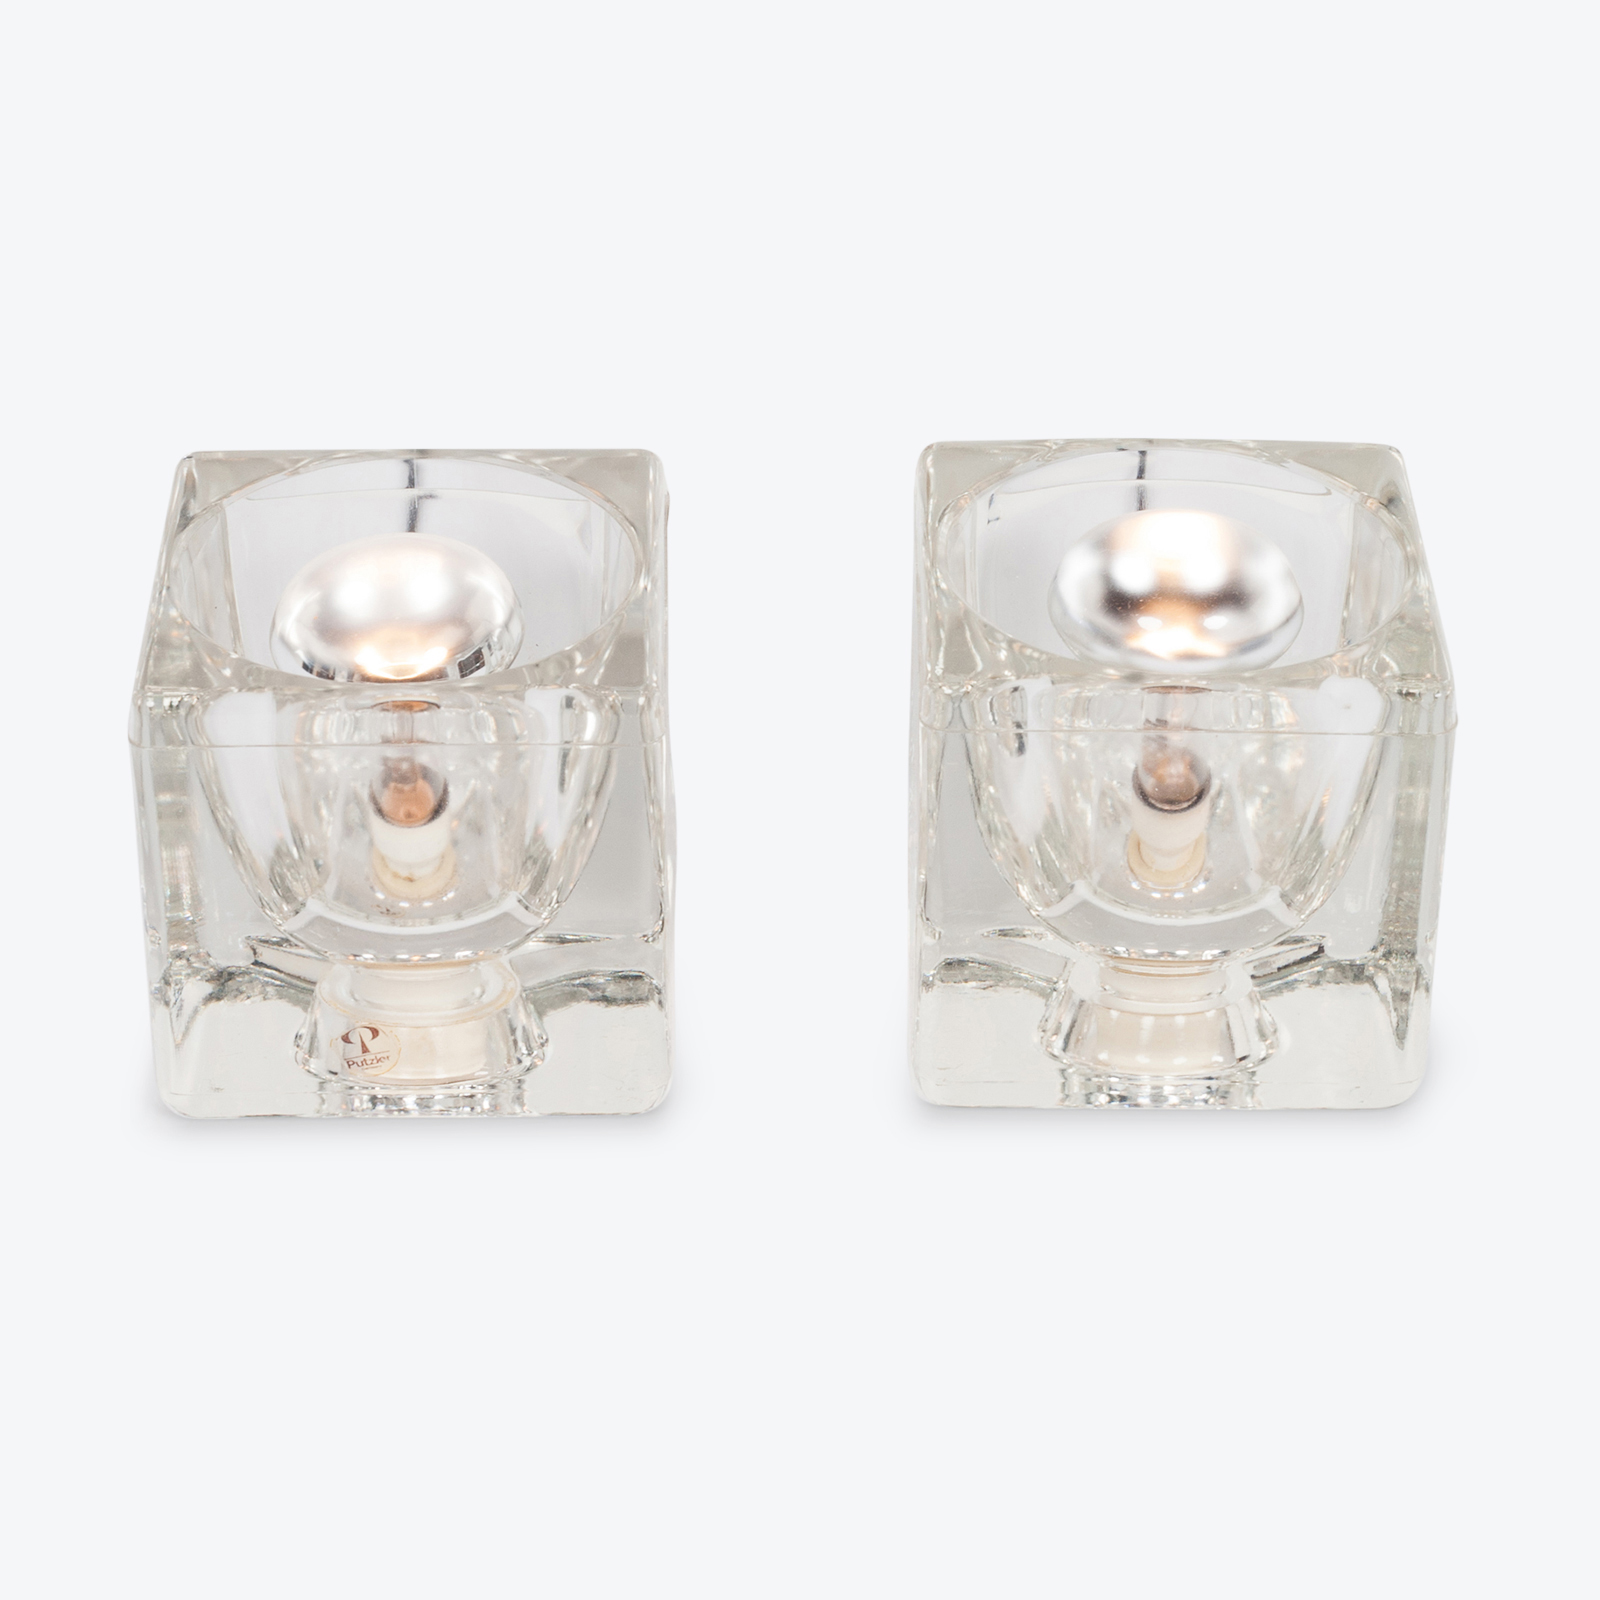 Pair Of Ice Cube Table Lamps By Peill & Putzler, 1960s, Germany Hero